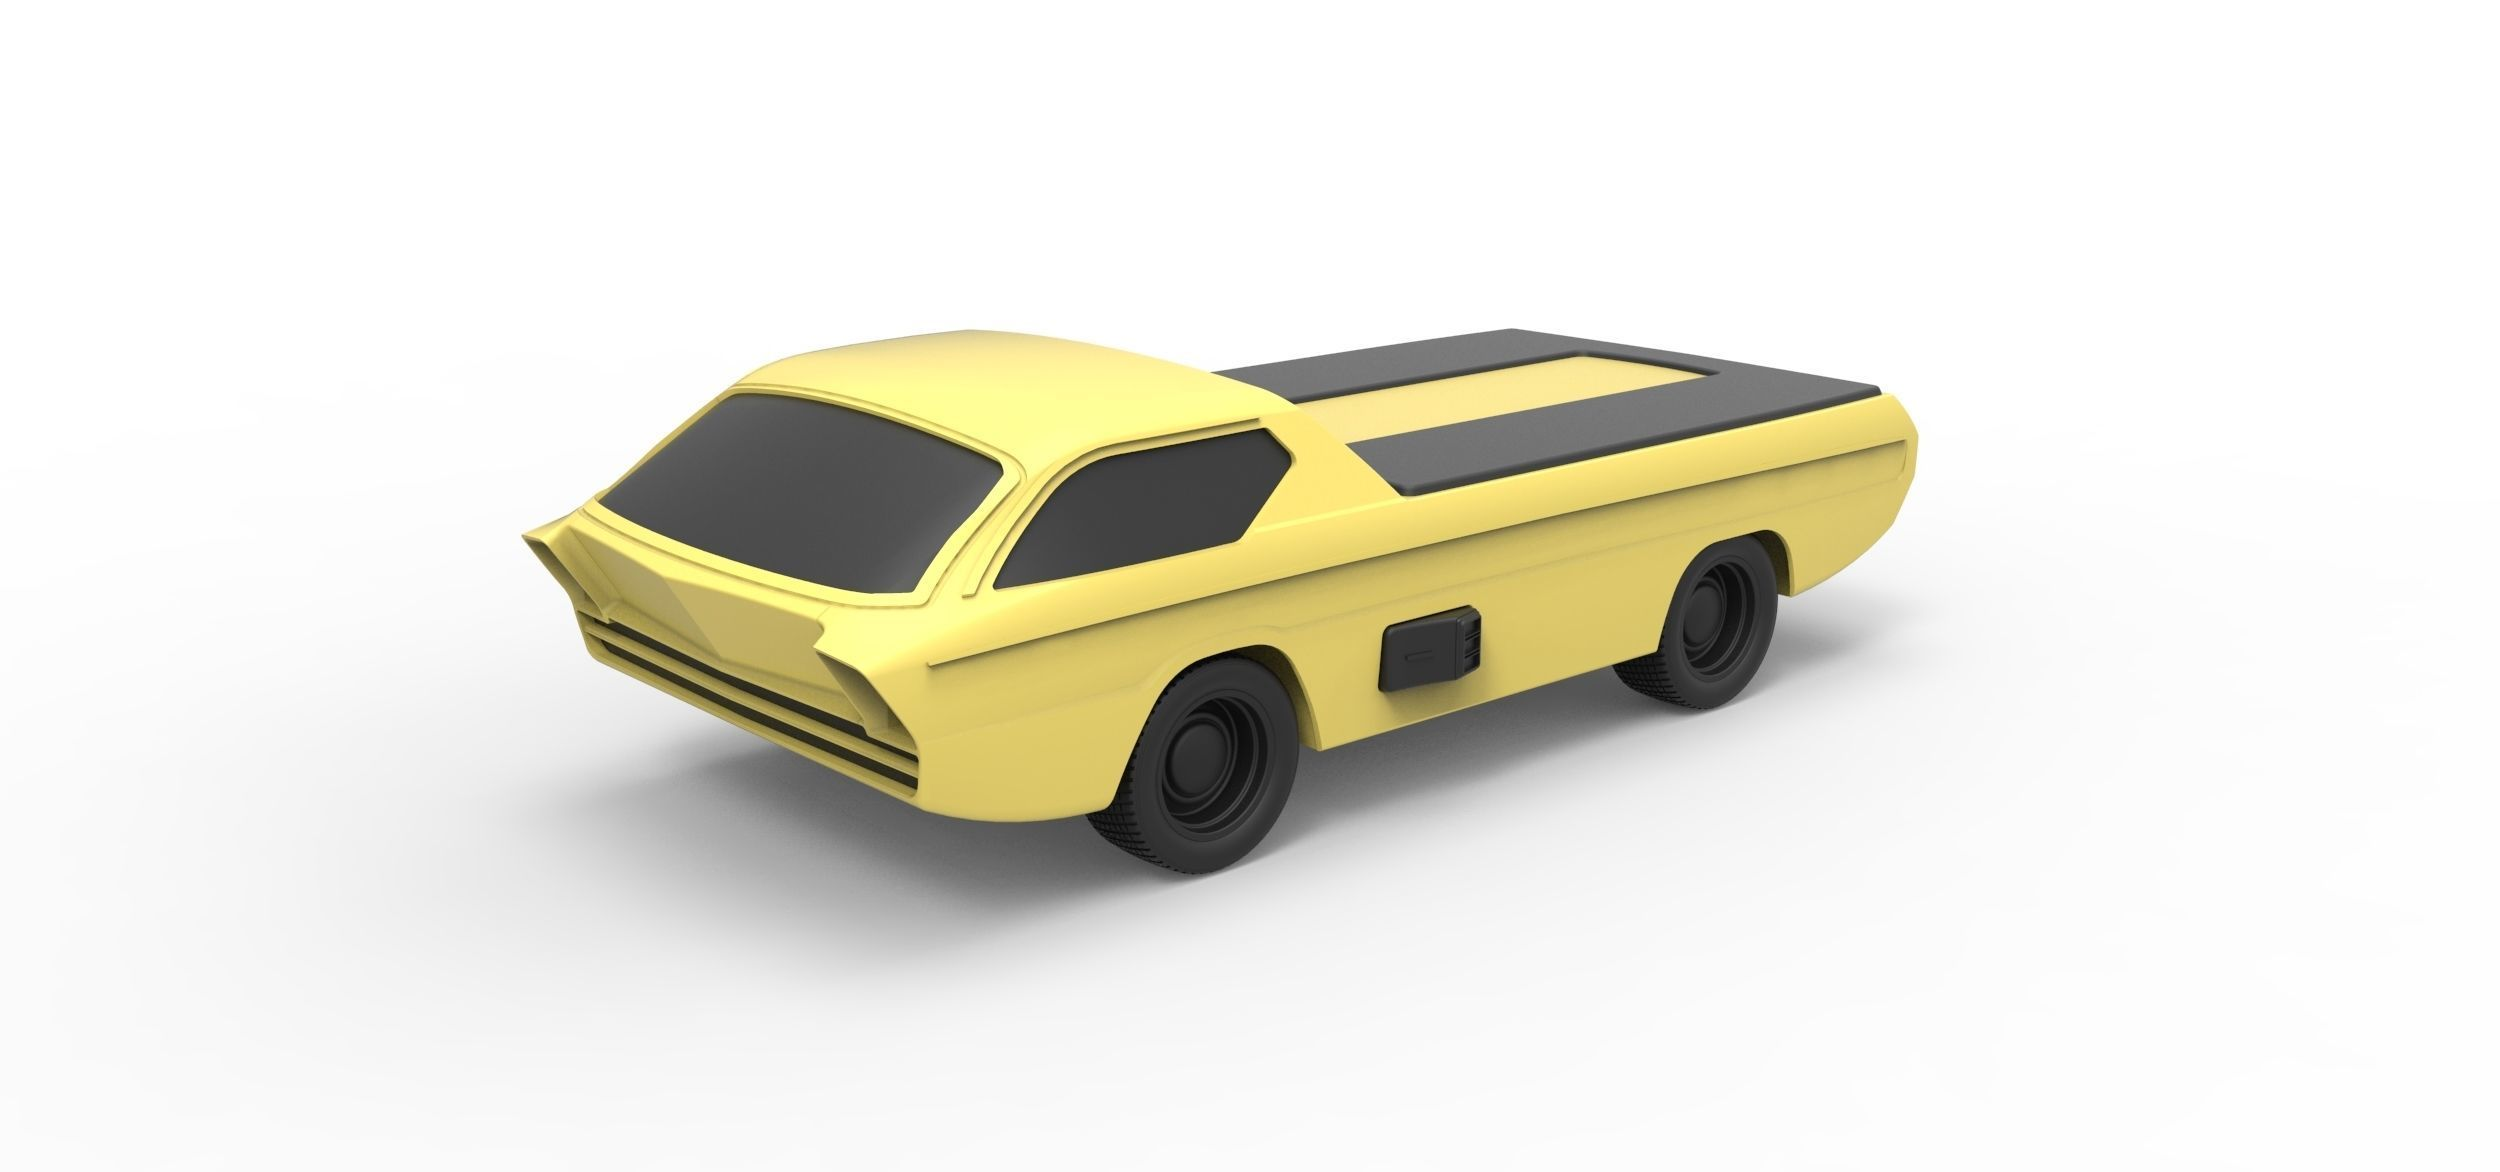 Diecast model Dodge Deora 1967 Scale 1 to 24